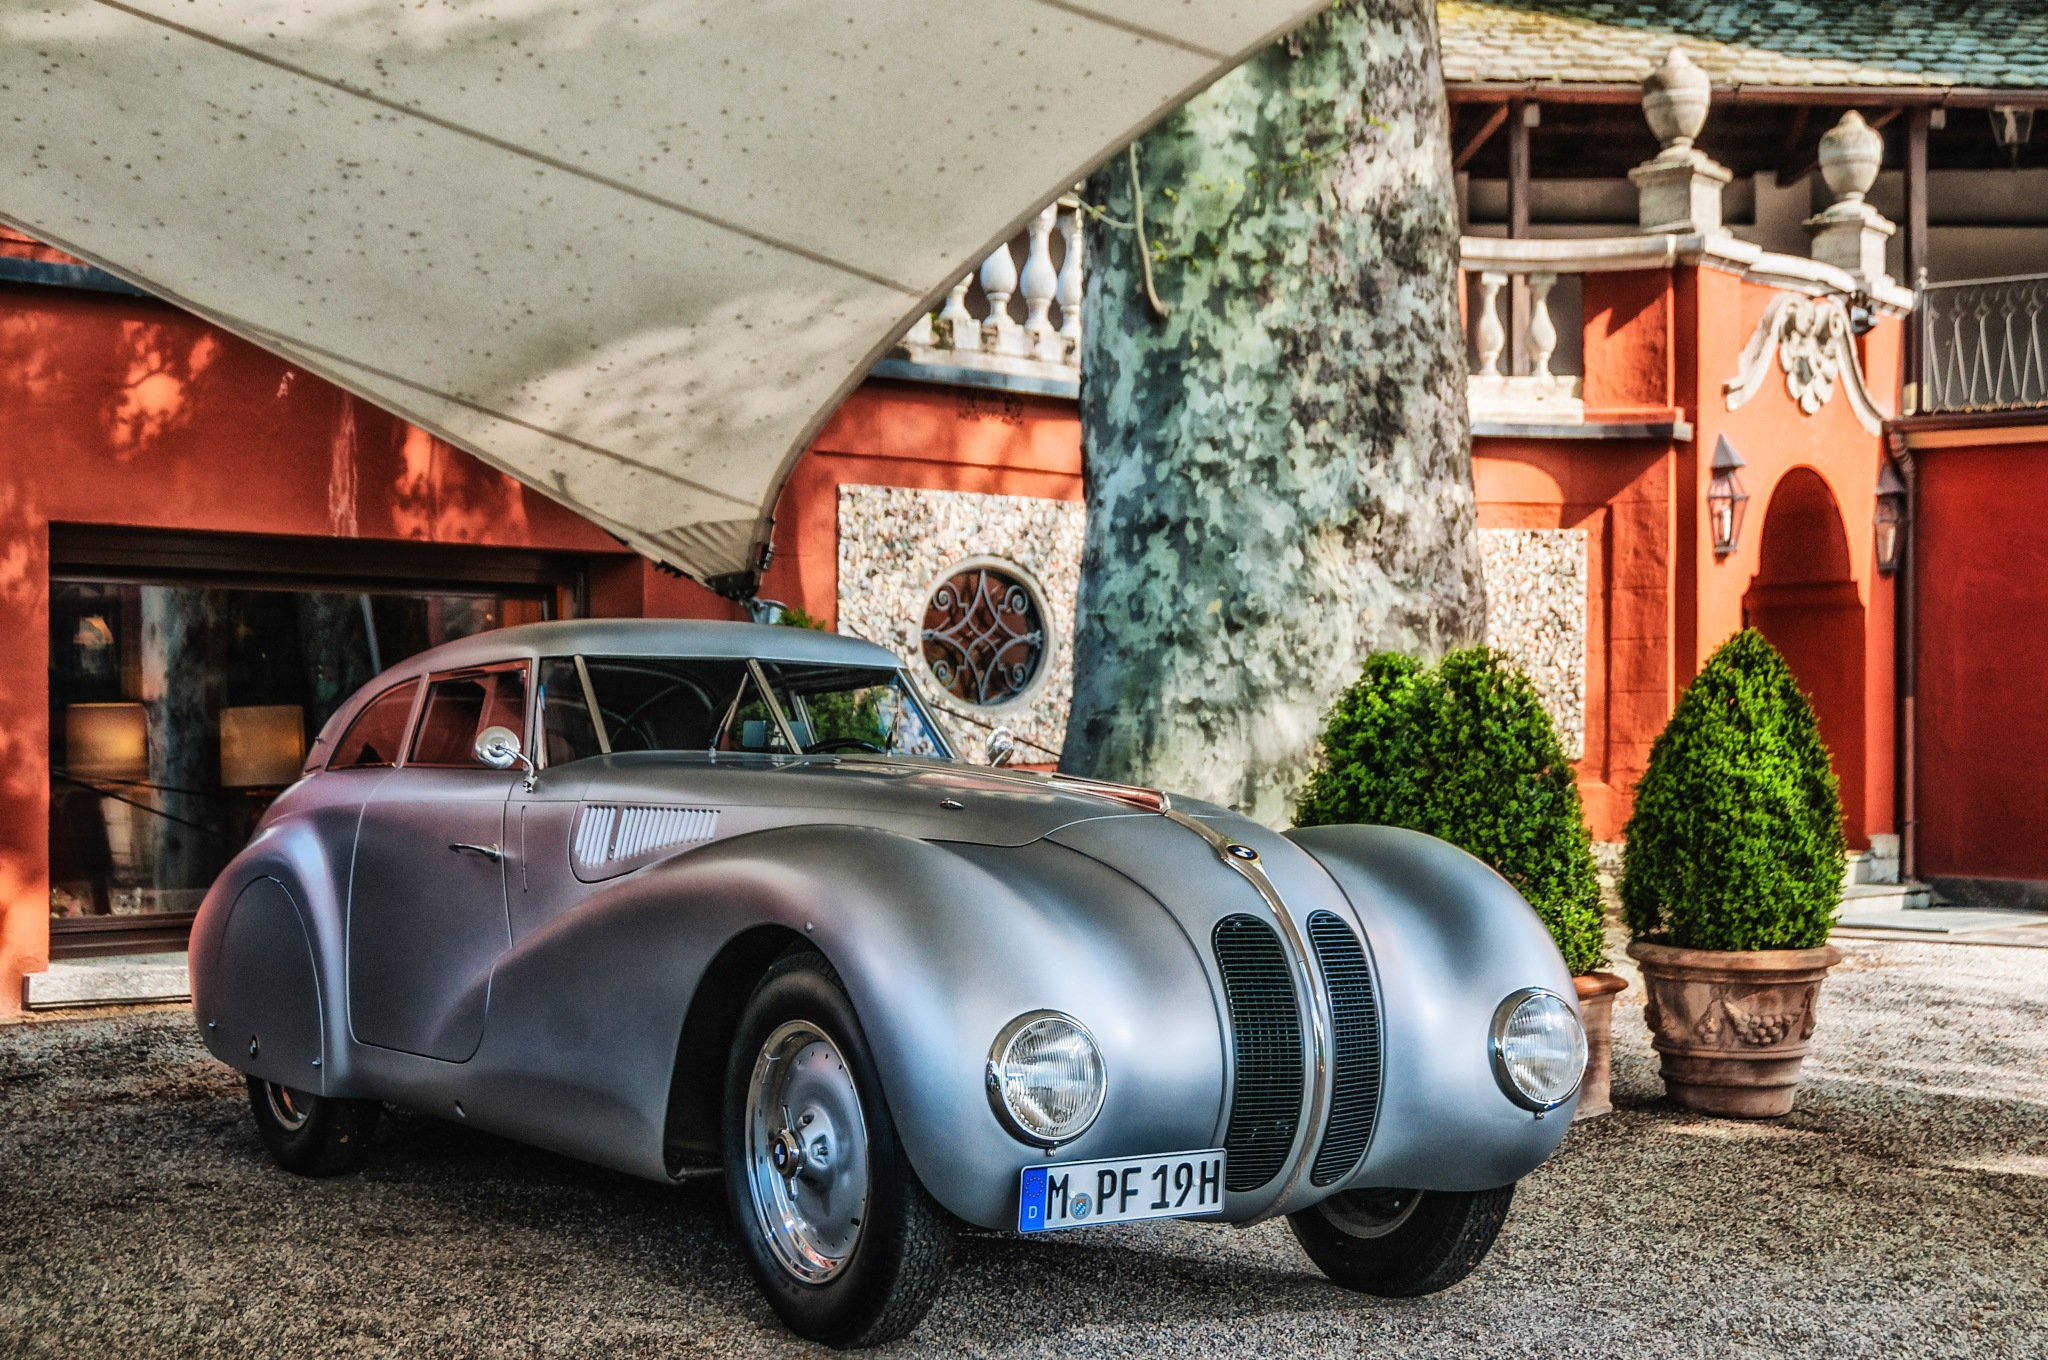 BMW 328 Kamm Coupé (1940) by DuschanTomic